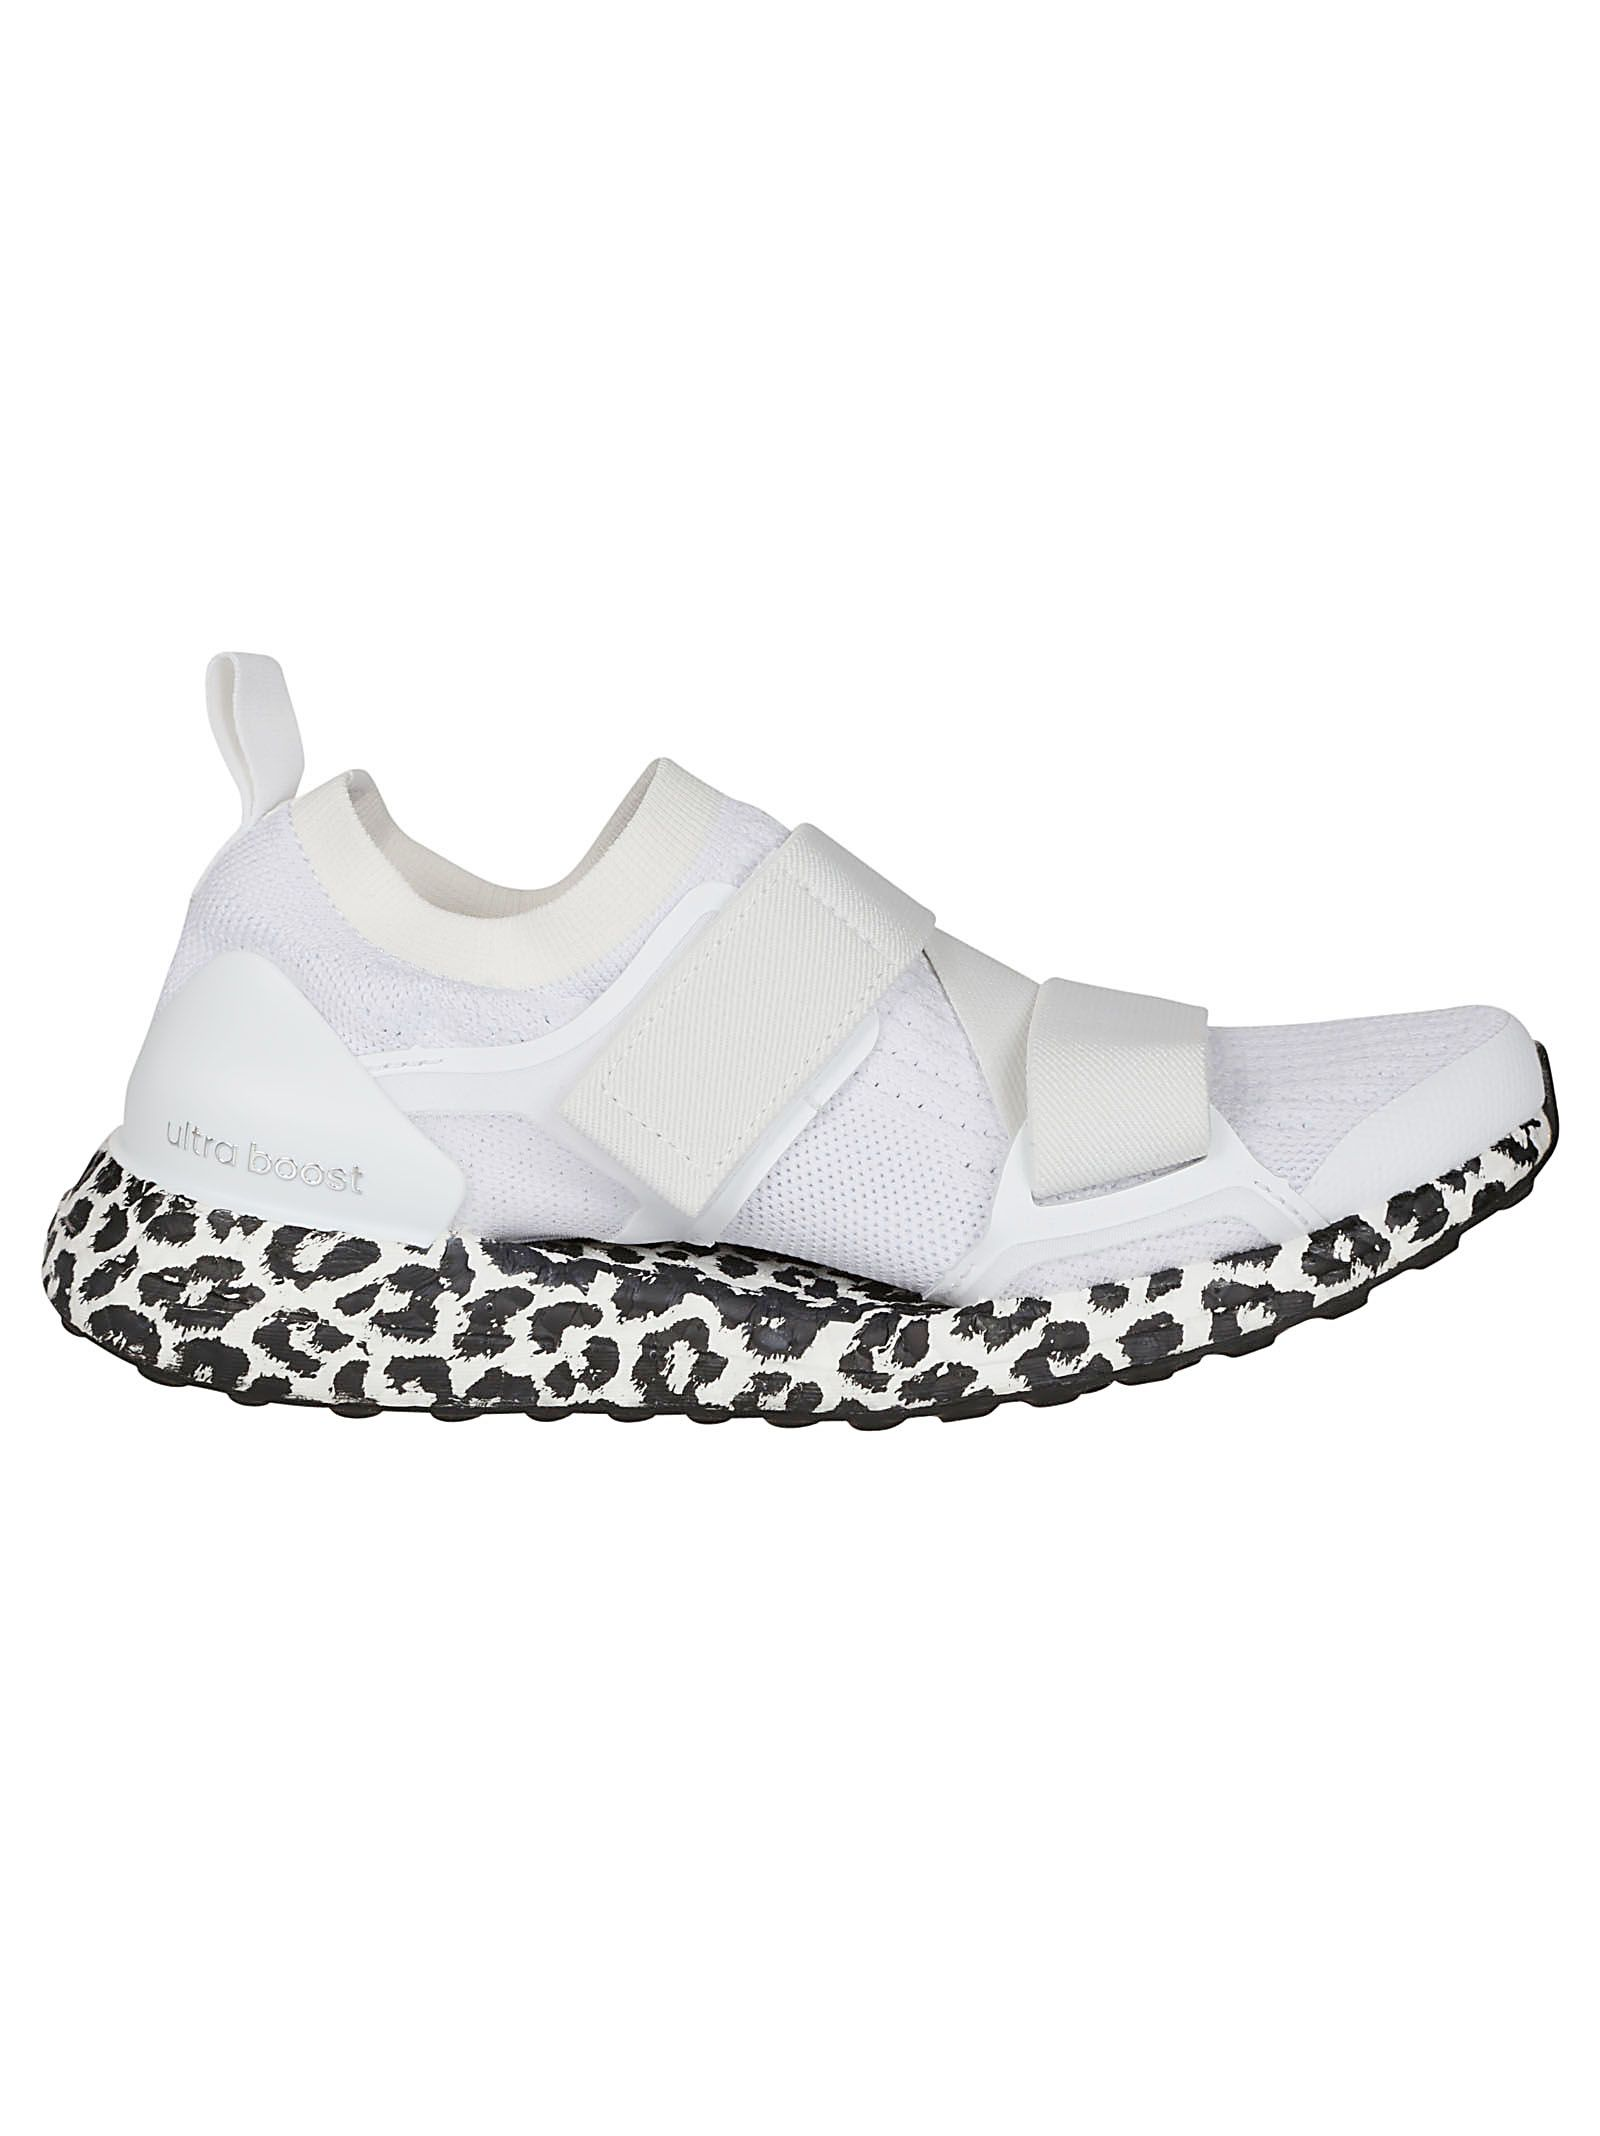 ADIDAS BY STELLA MCCARTNEY WOMEN'S AC7548 WHITE POLYESTER SNEAKERS